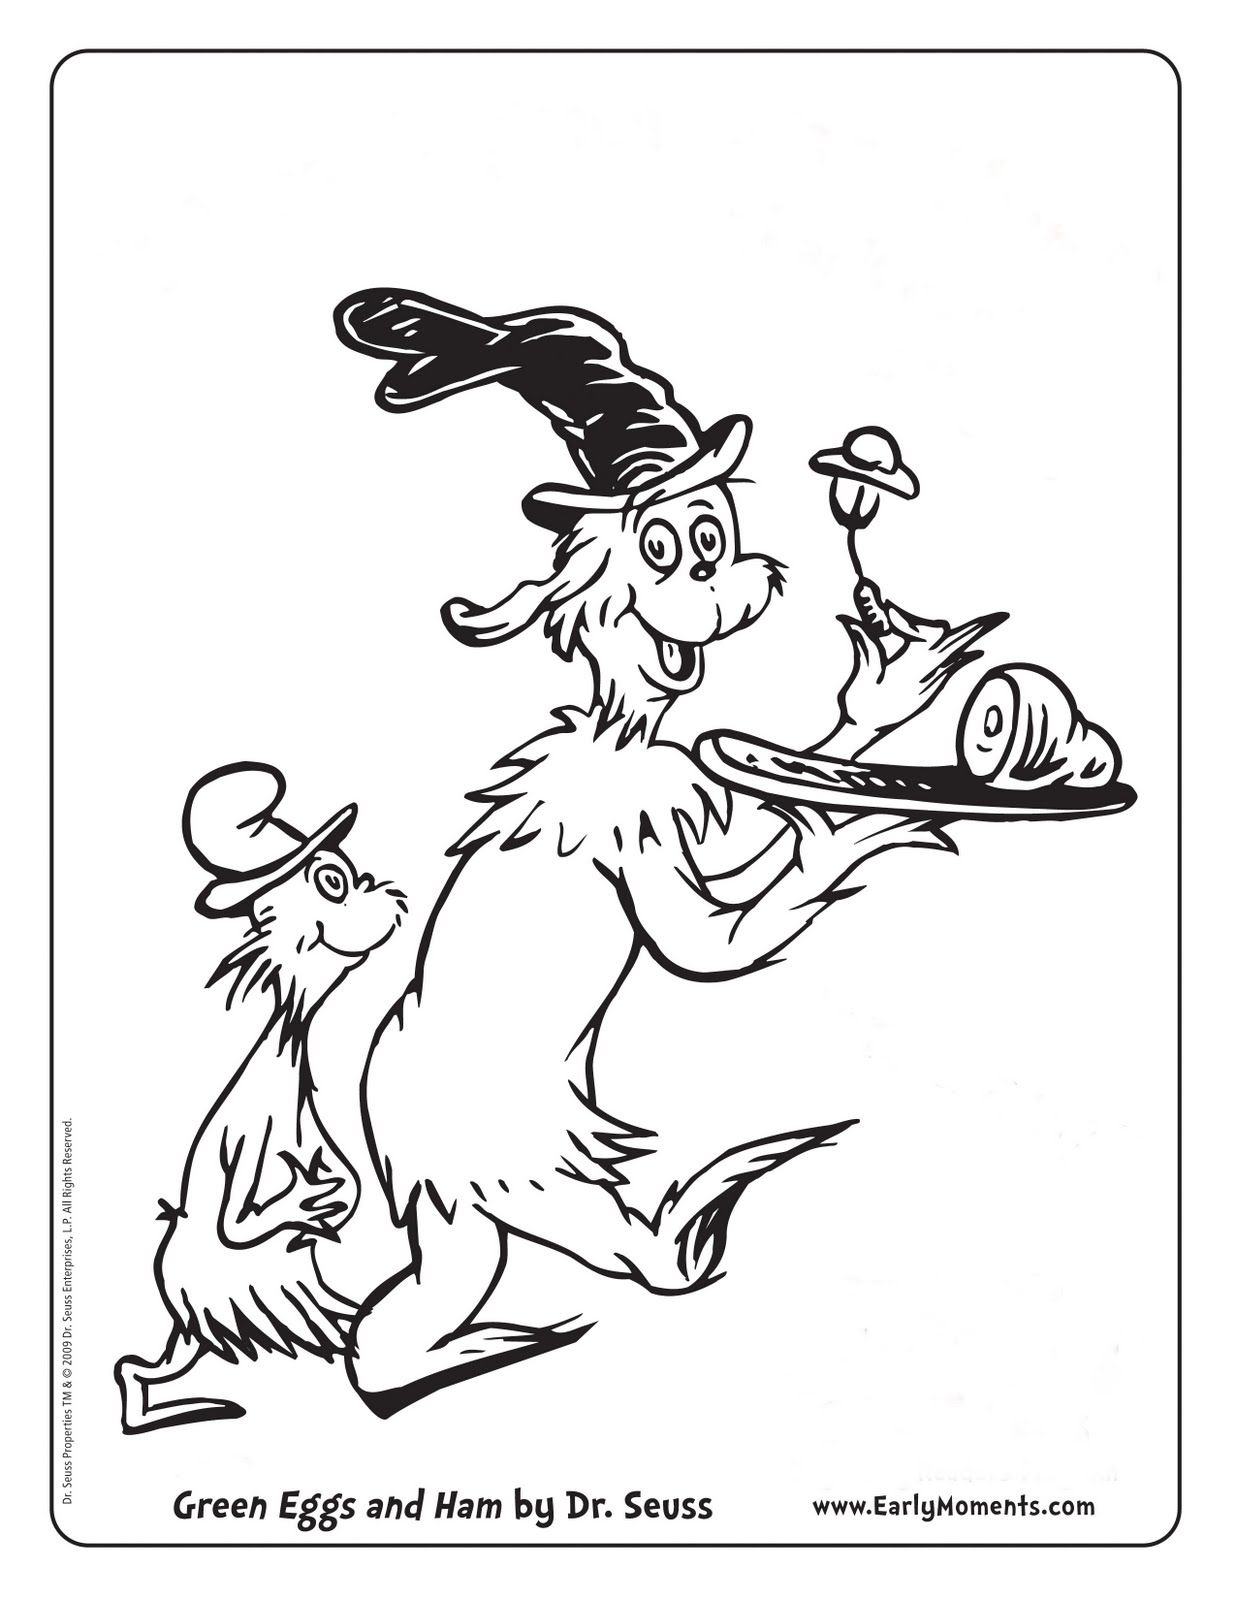 green eggs and ham coloring page # 4